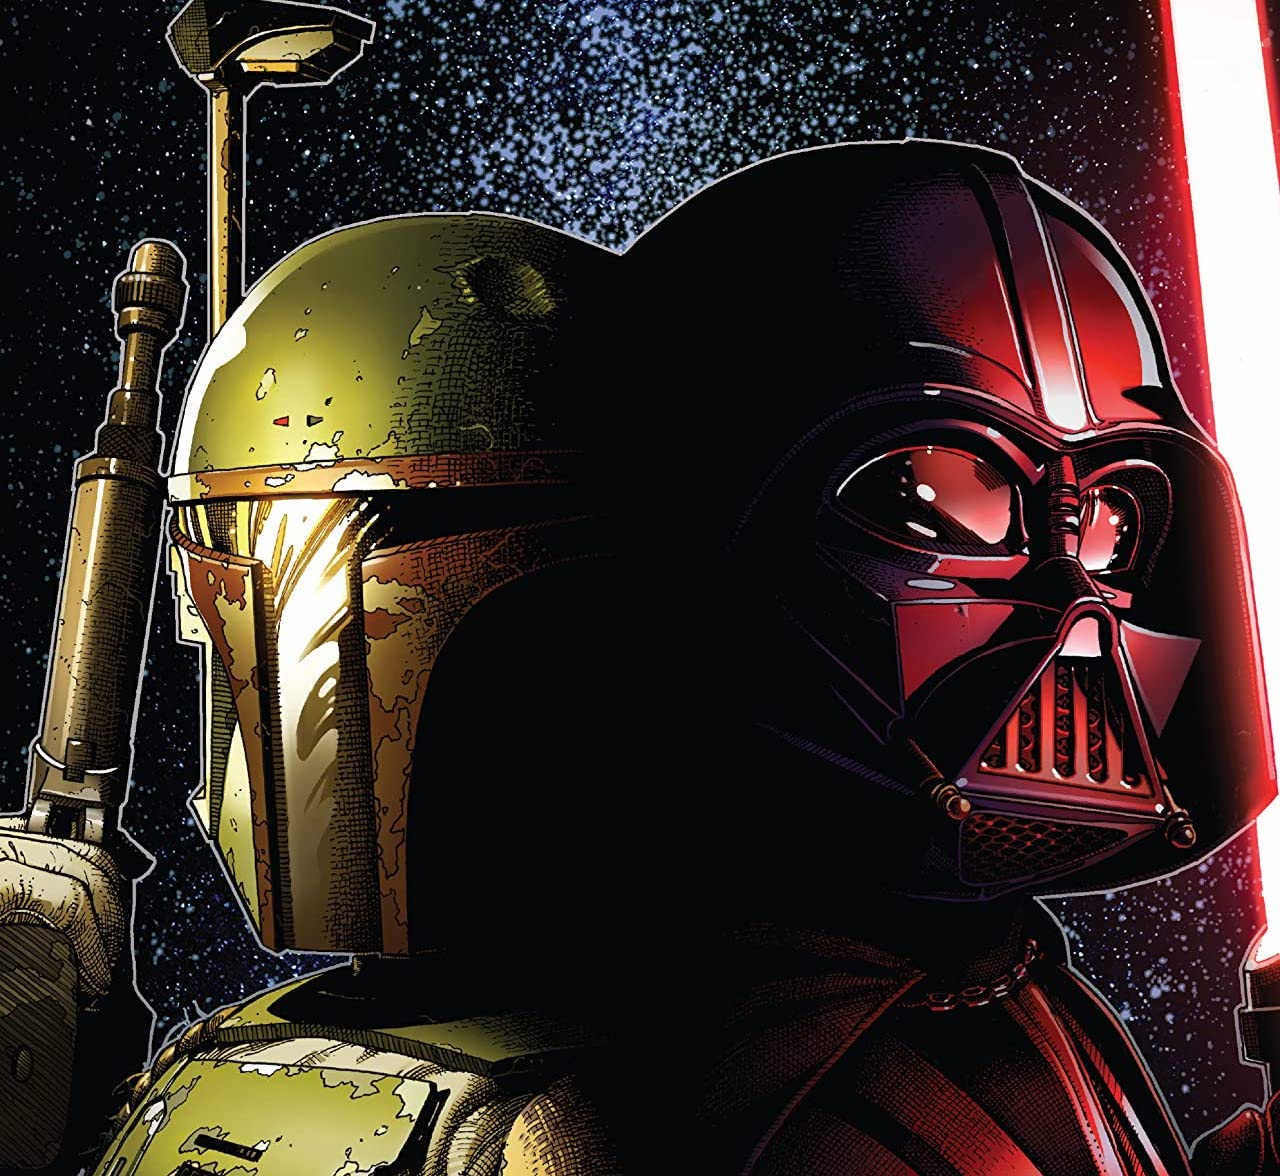 'Star Wars: War of the Bounty Hunters' #3 features an impressive amount of characters